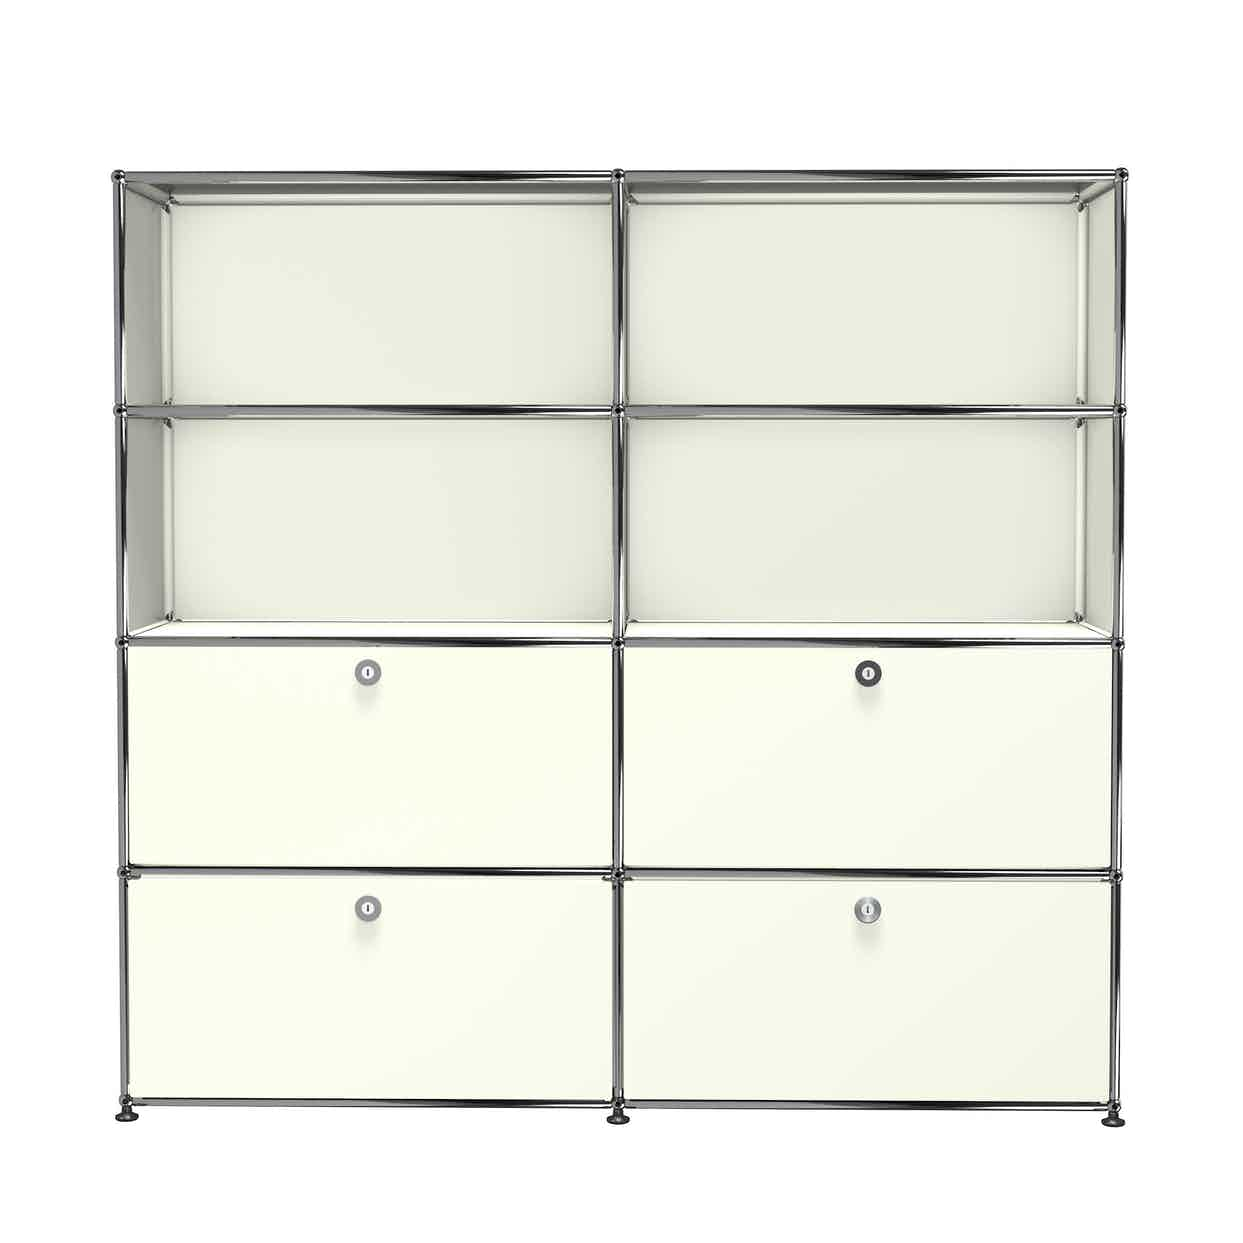 Usm-quick-ship-Haller-Storage-S2-white-haute-living